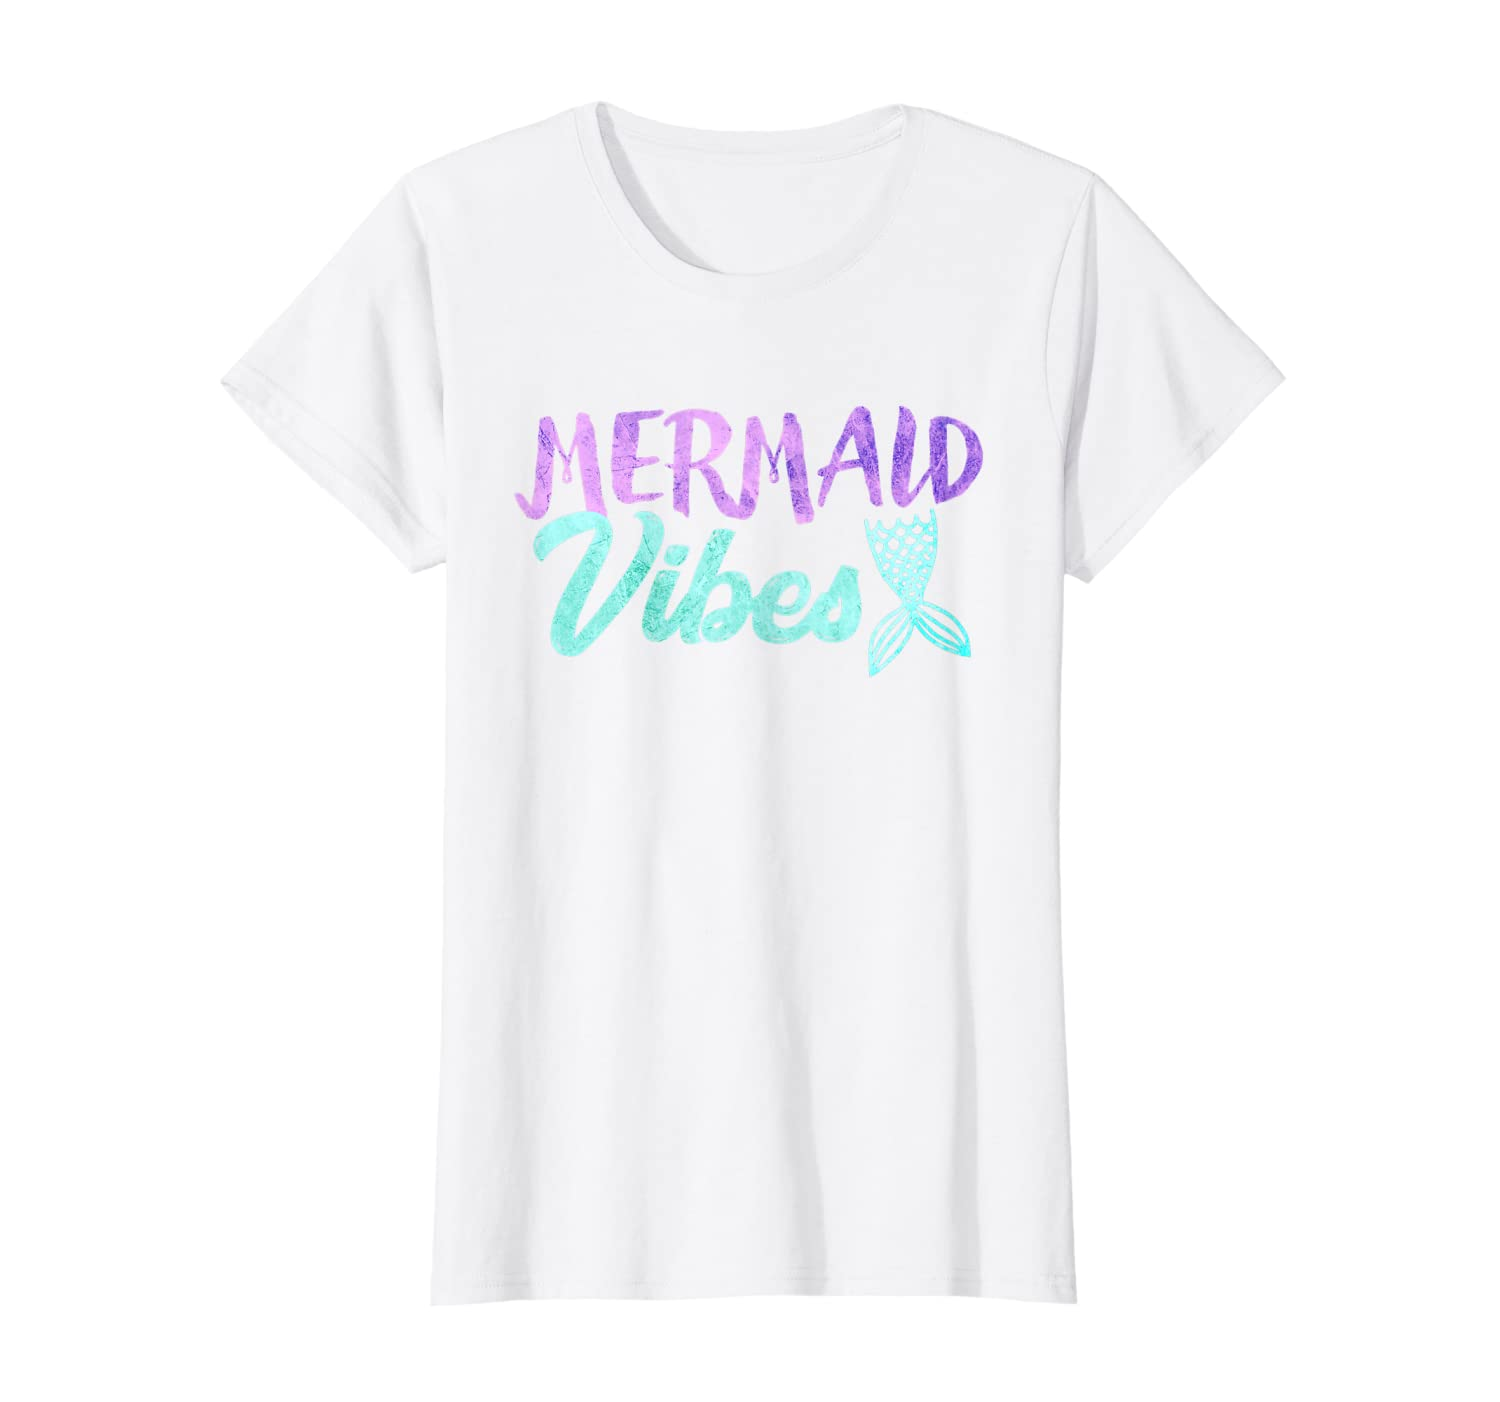 Mermaid Vibes T-shirt Mermaid Tail Women Girl Shirt-Loveshirt